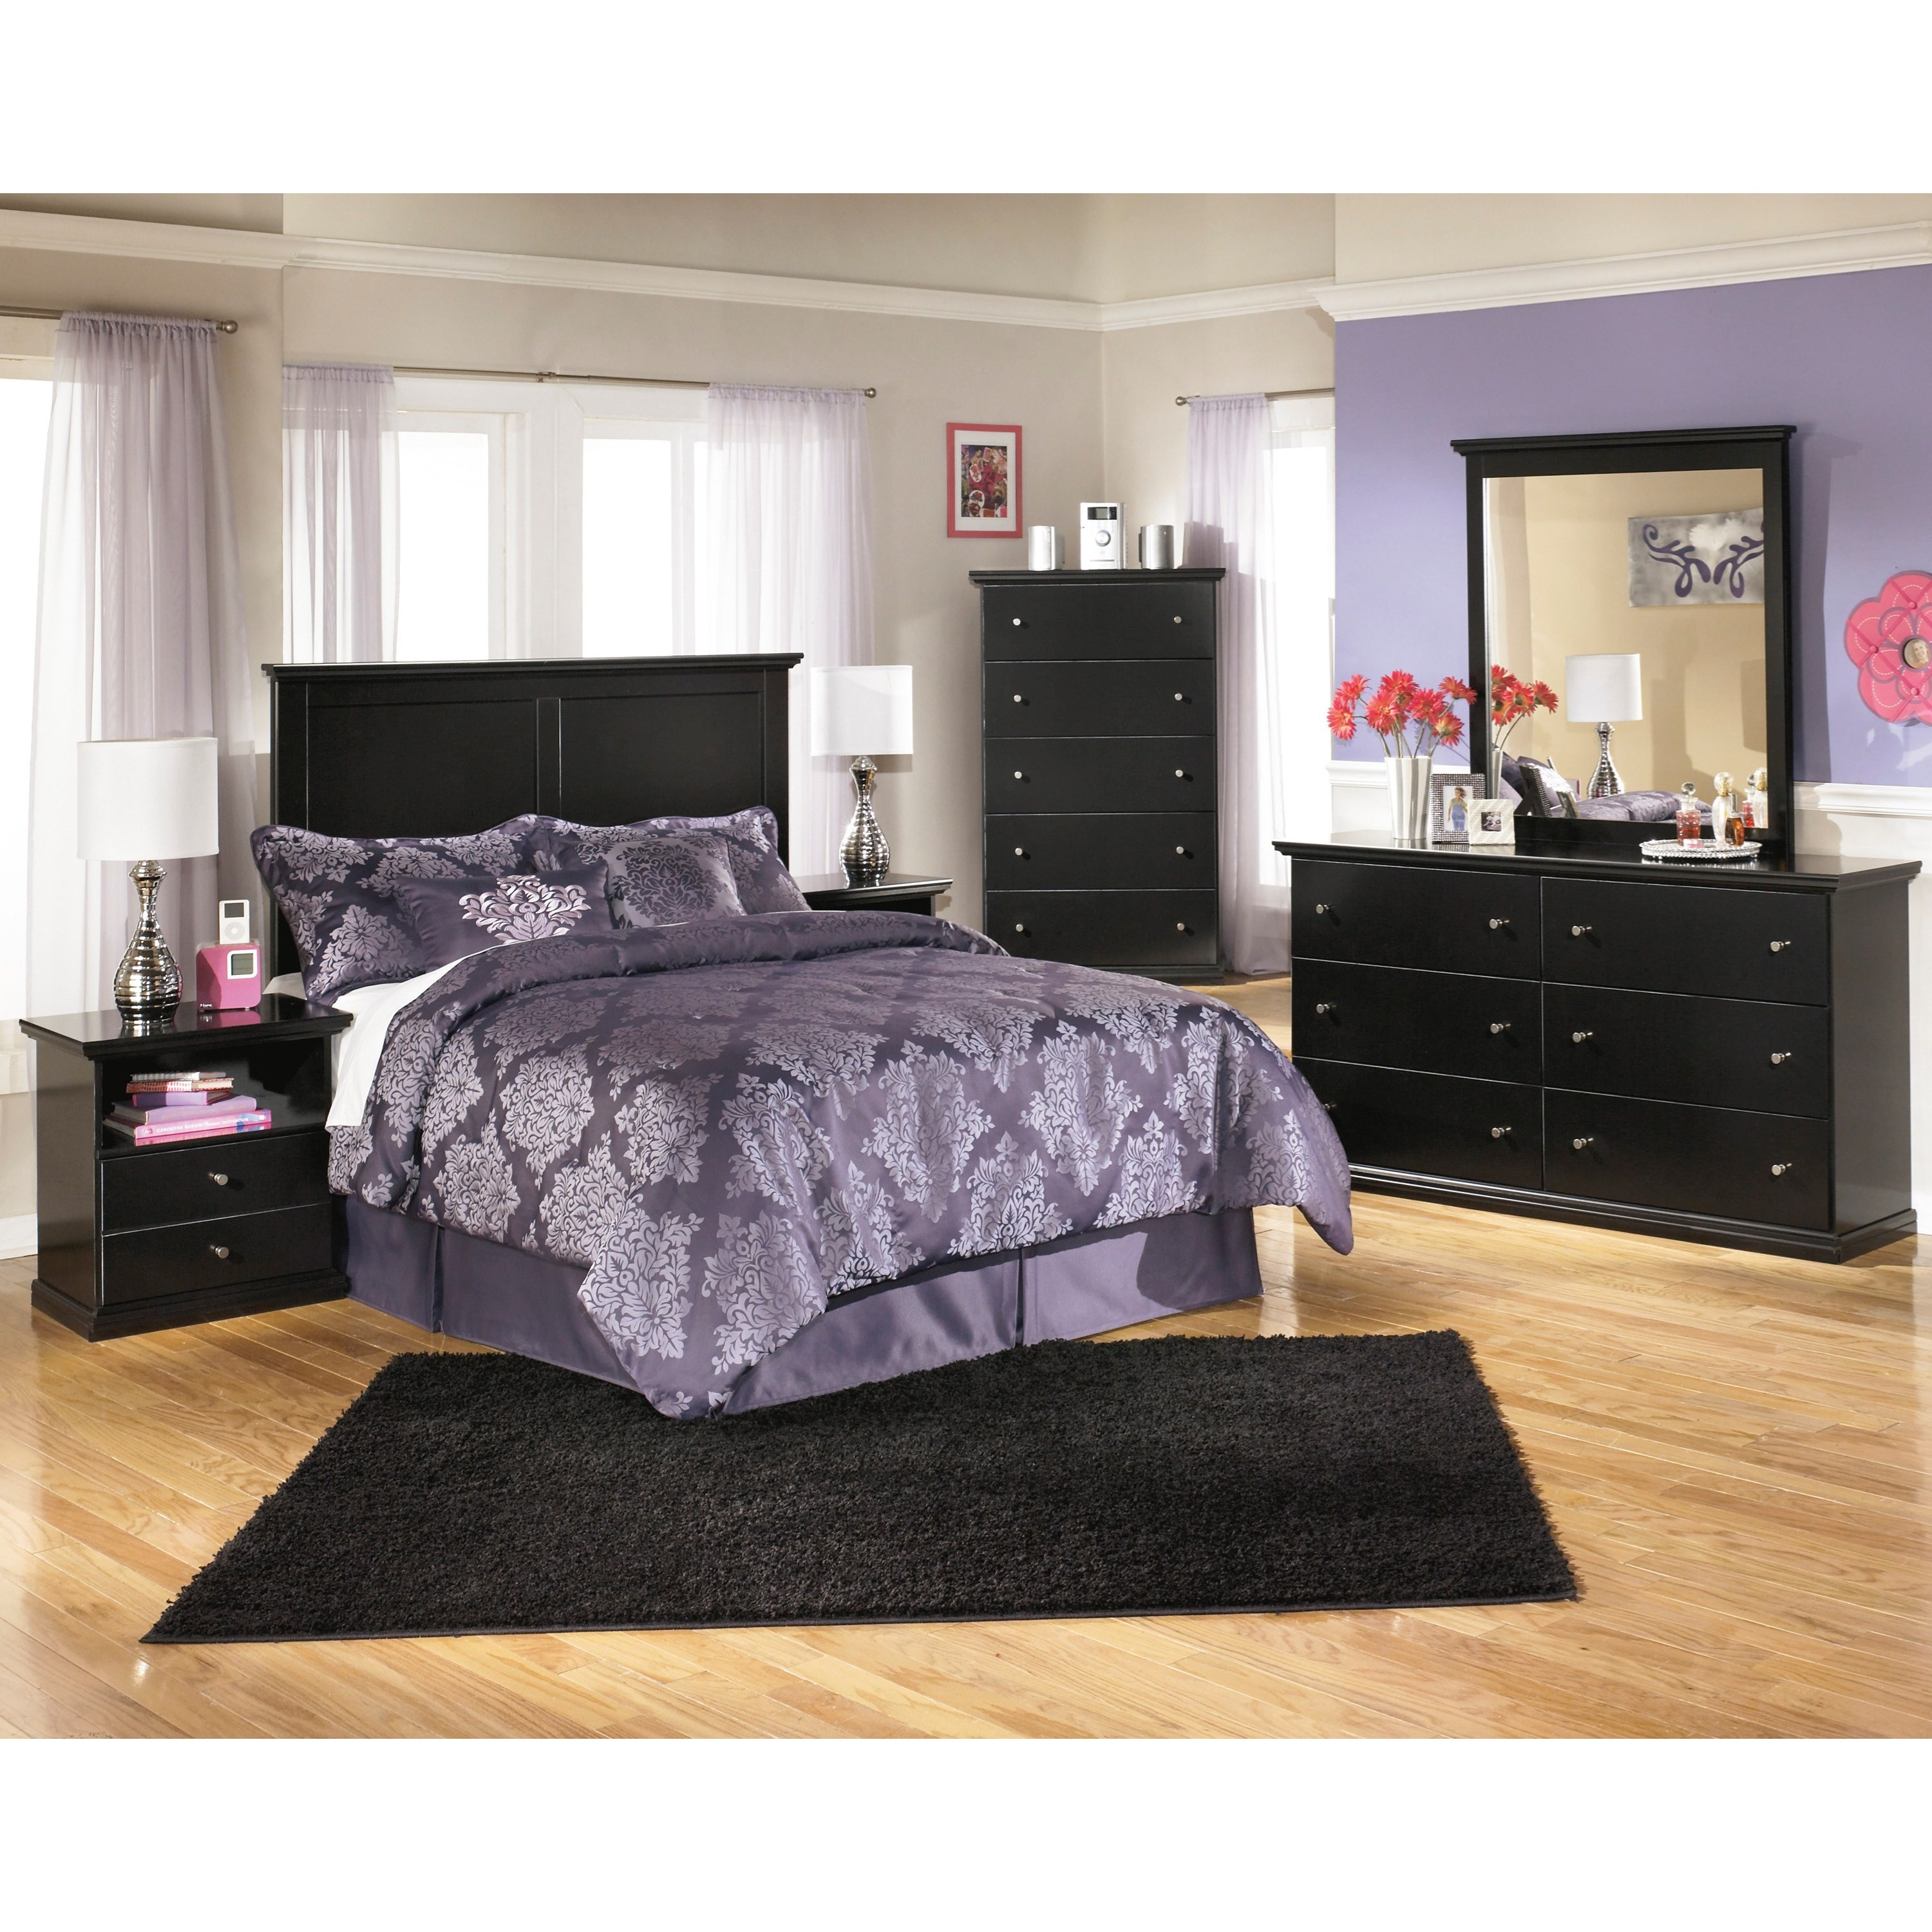 Signature Design by Ashley Maribel Twin Bedroom Group - Item Number: B138 T Bedroom Group 4